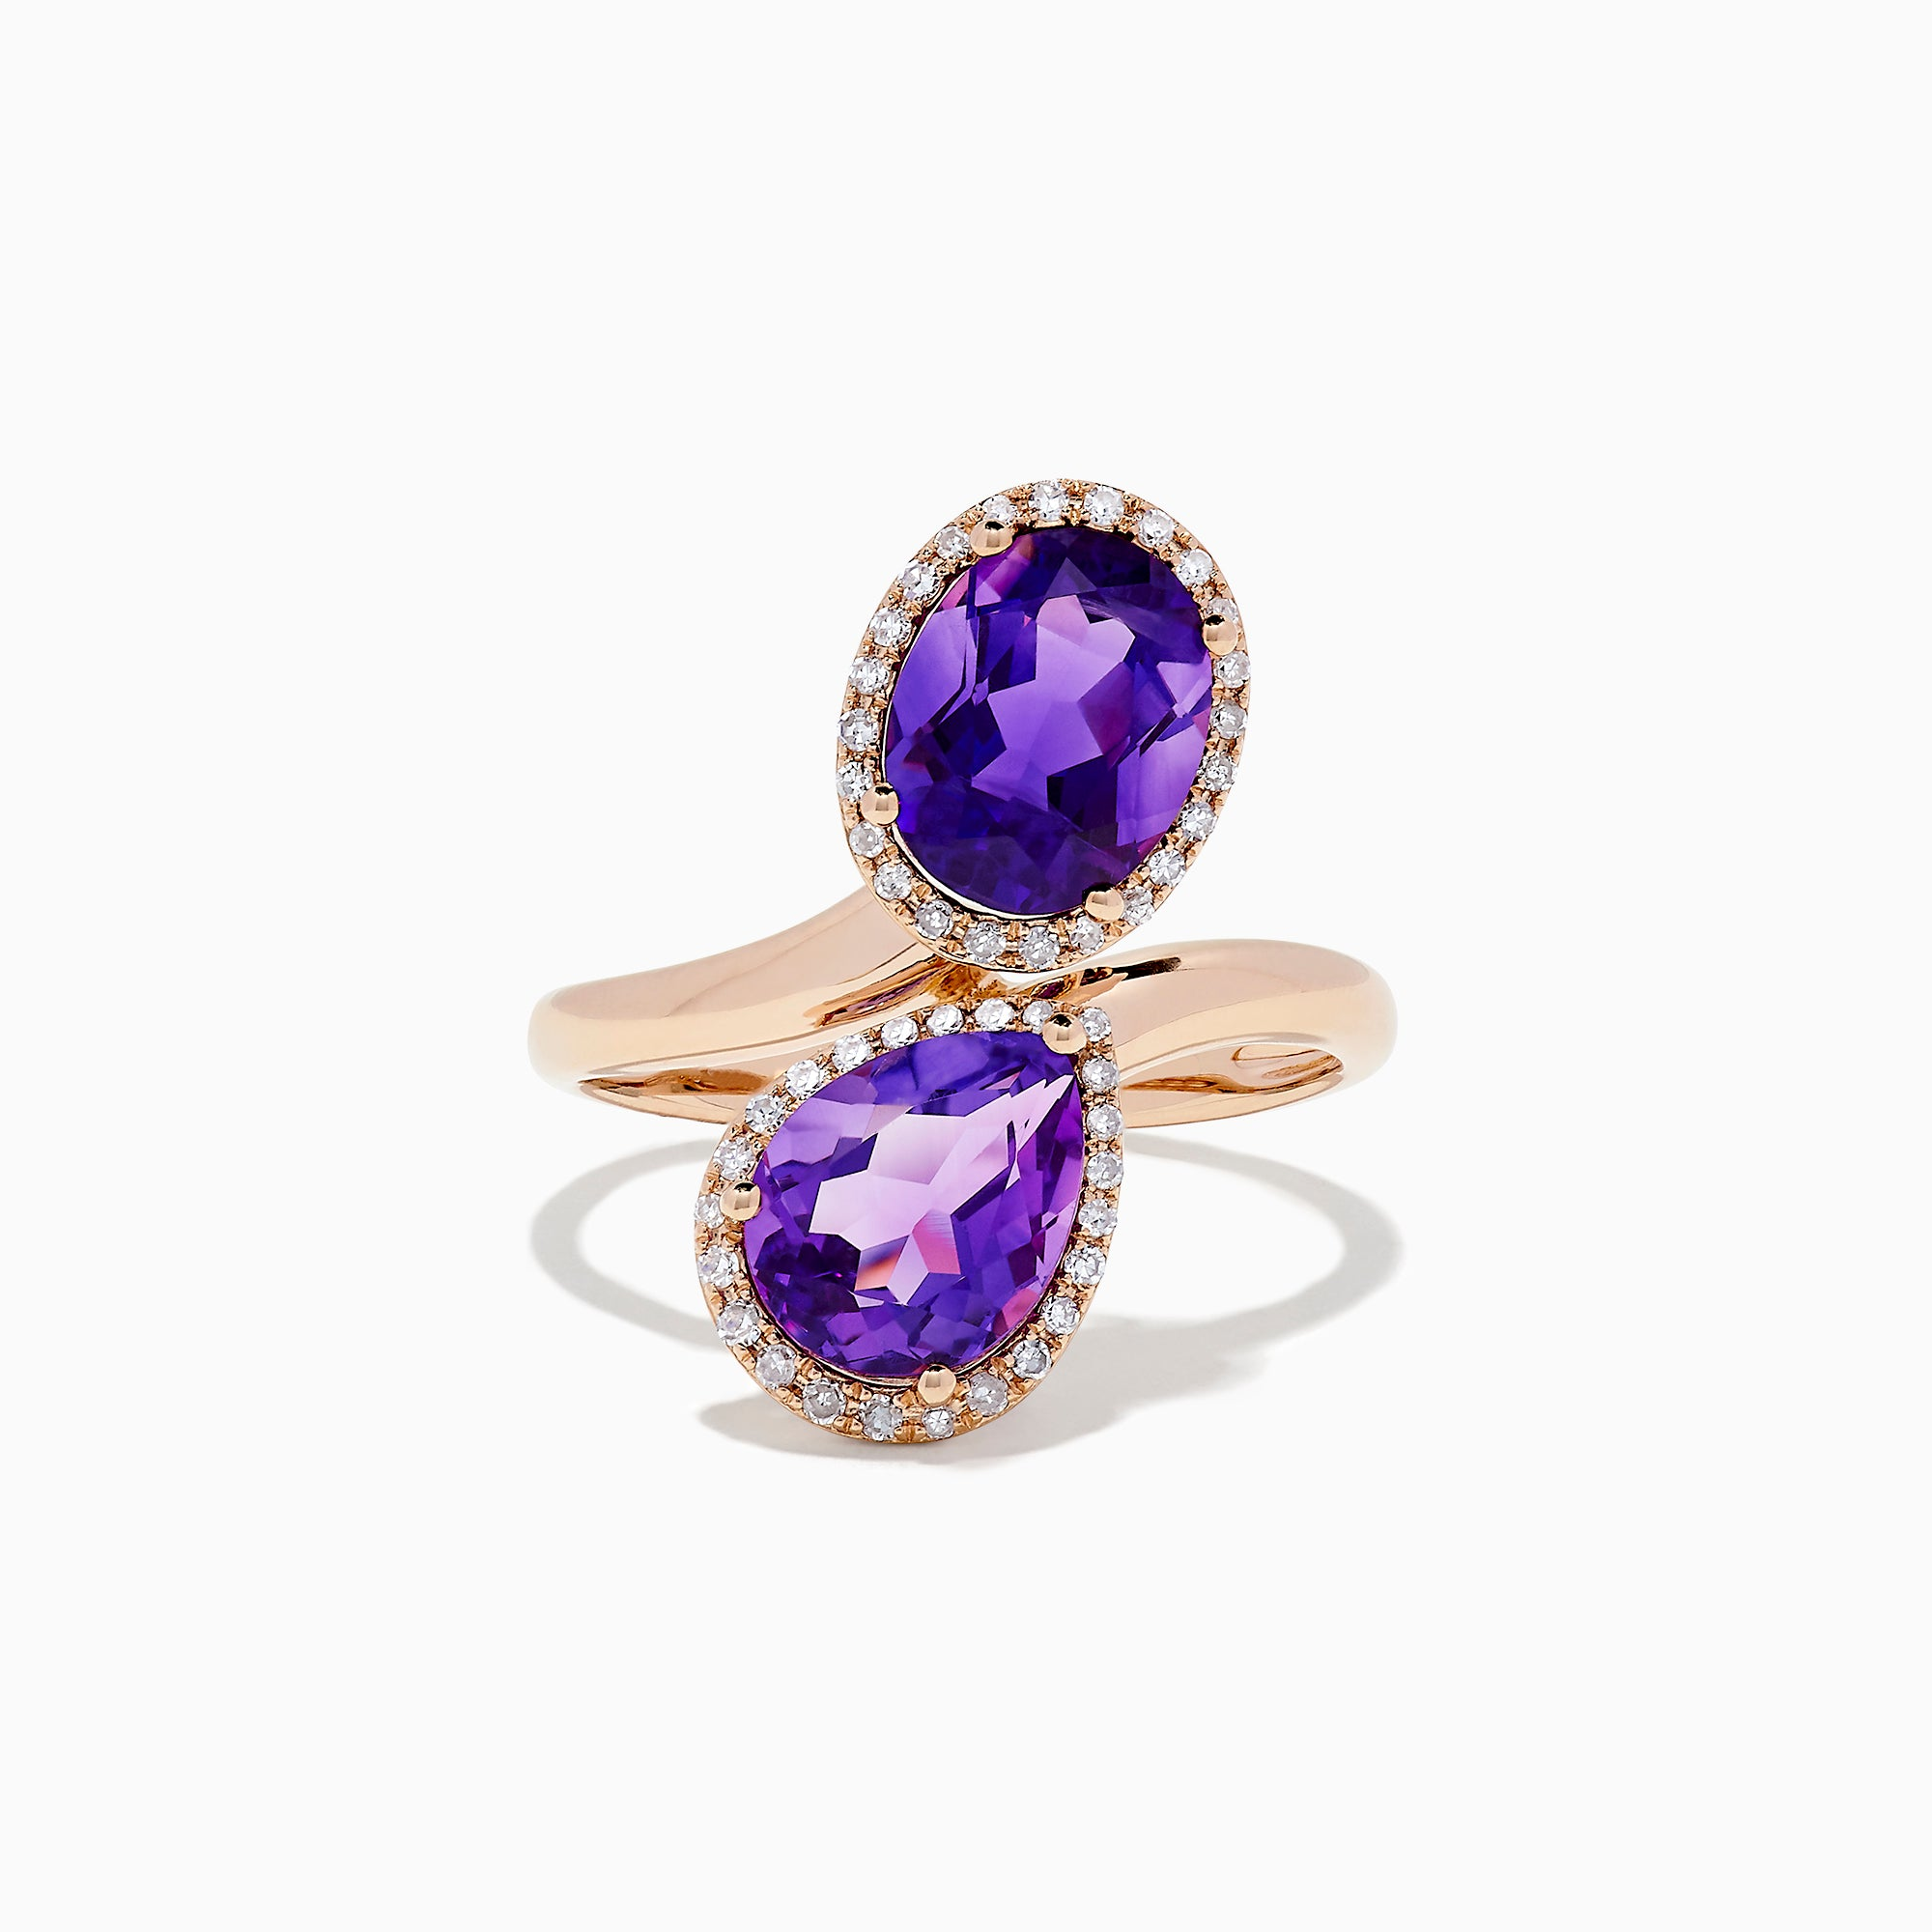 Effy 14K Rose Gold Amethyst and Diamond Ring, 4.03 TCW